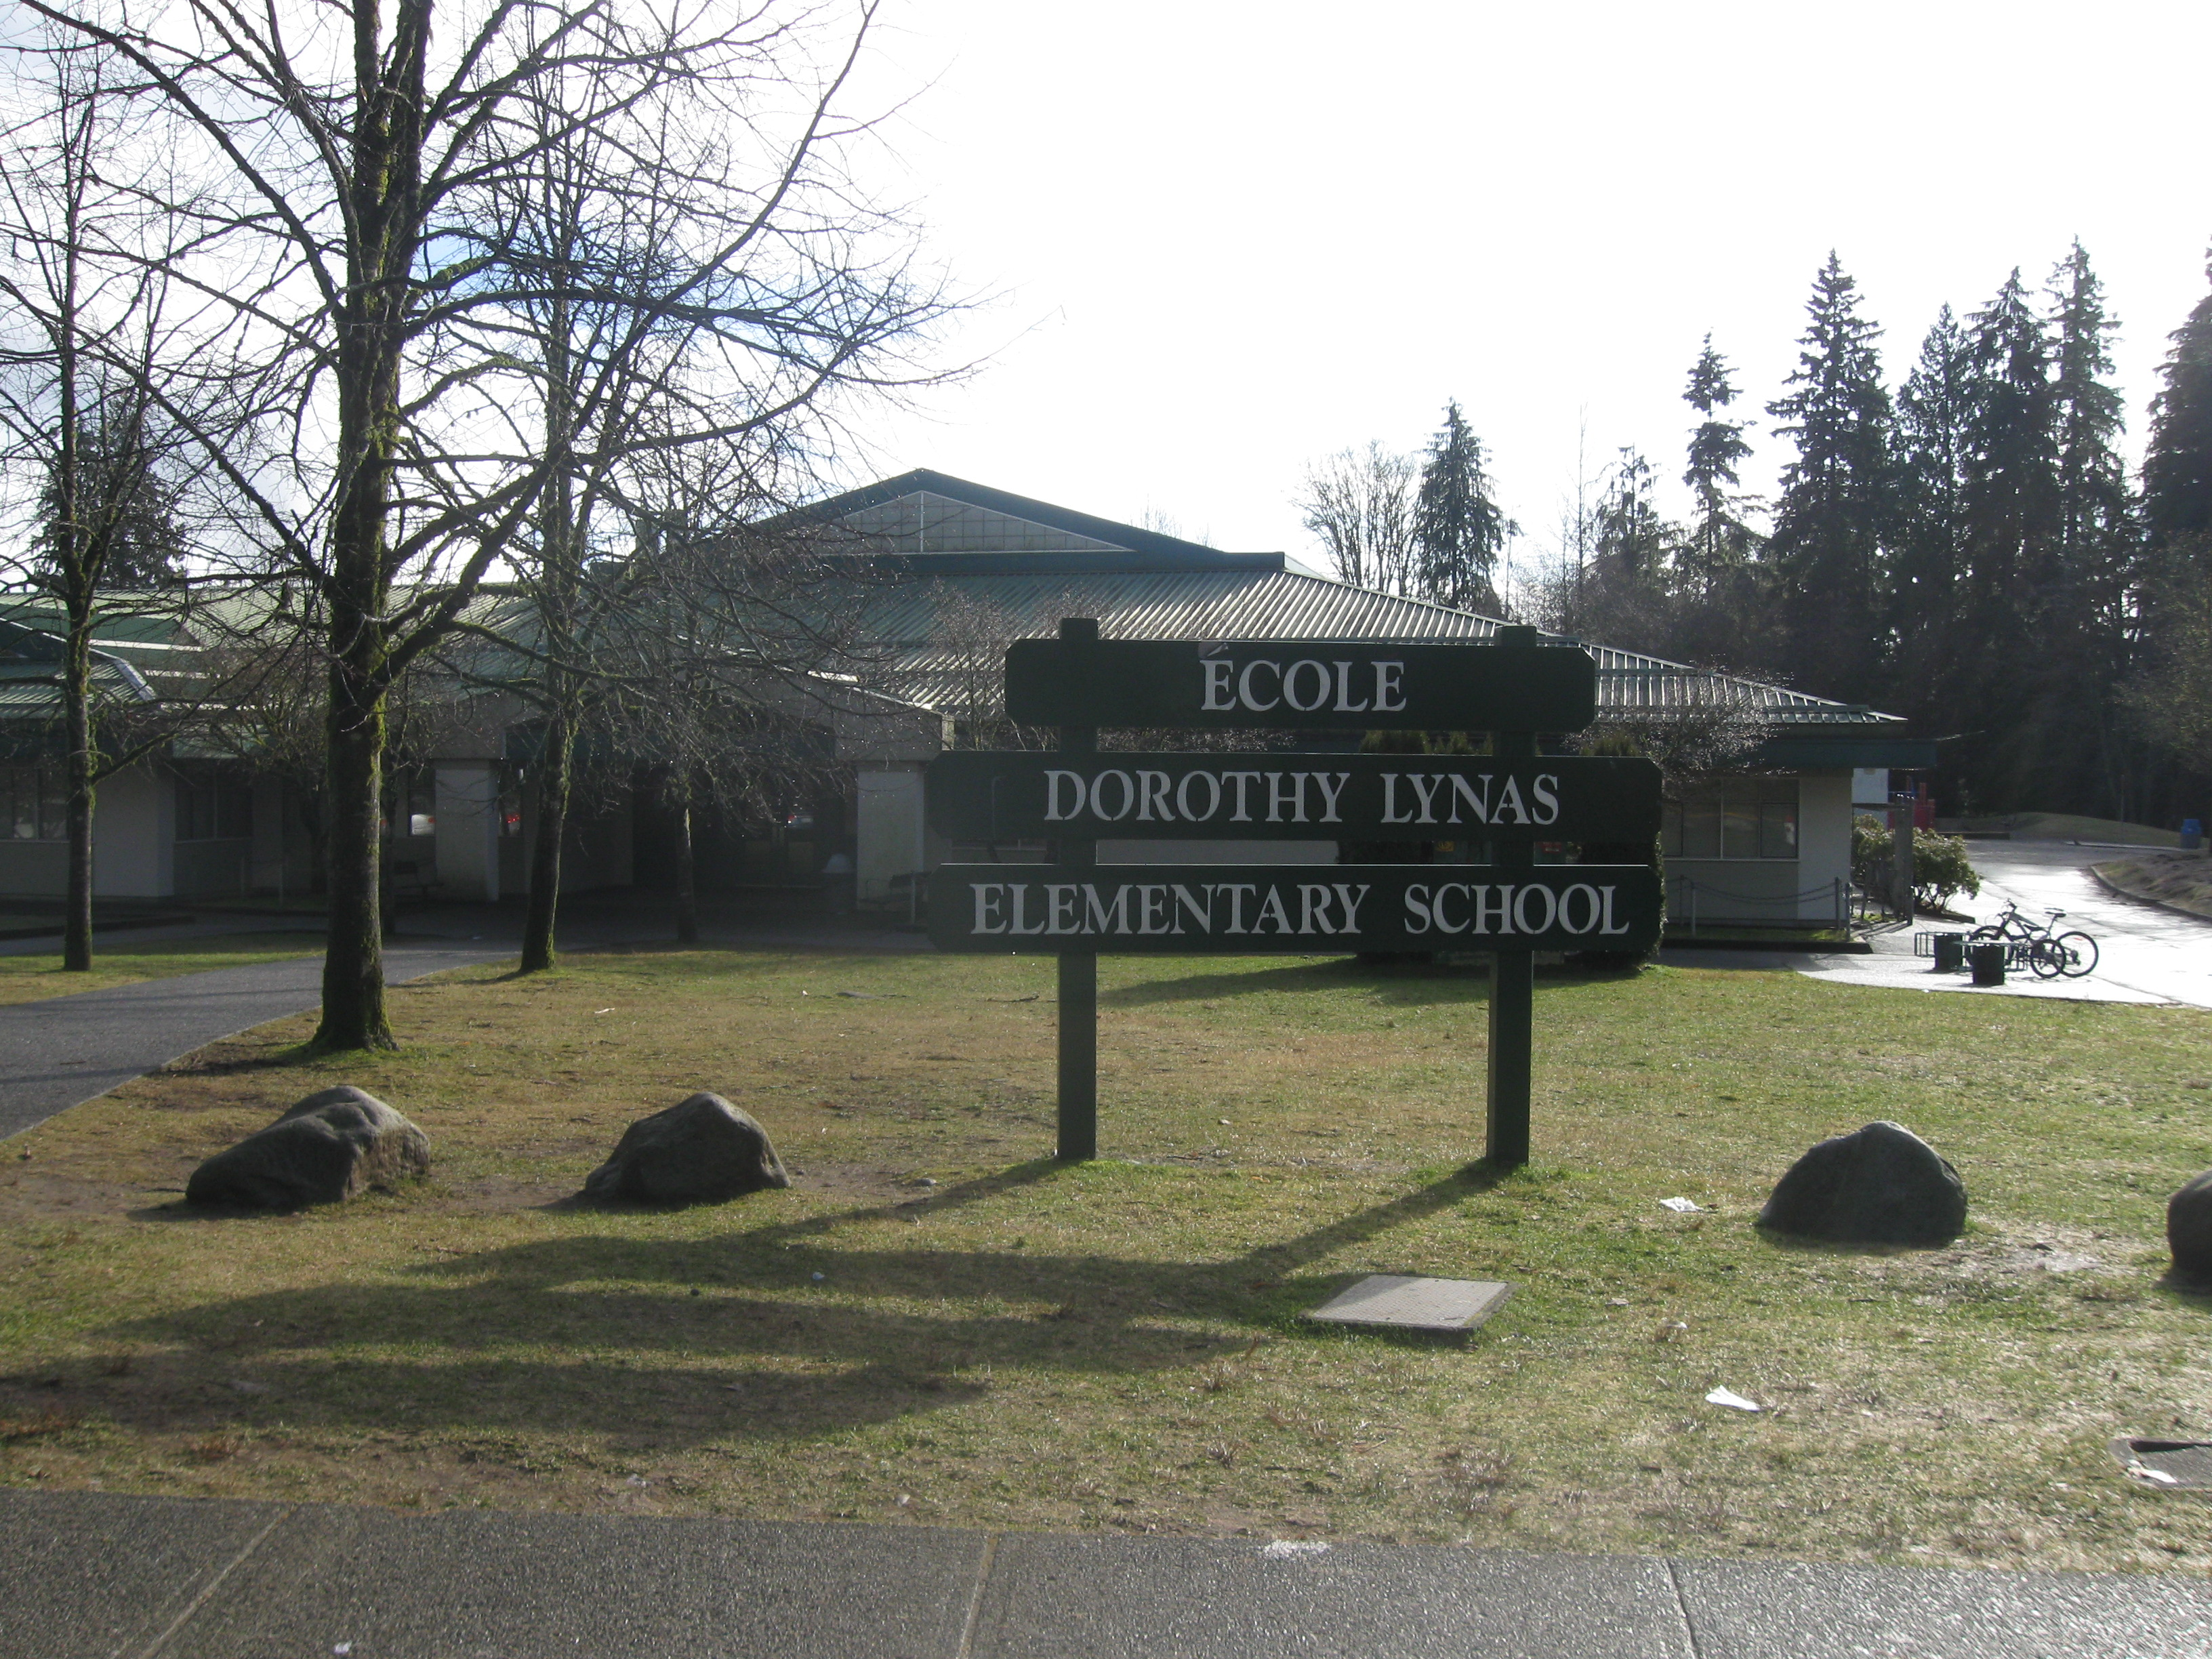 WELCOME TO ECOLE DOROTHY LYNAS...